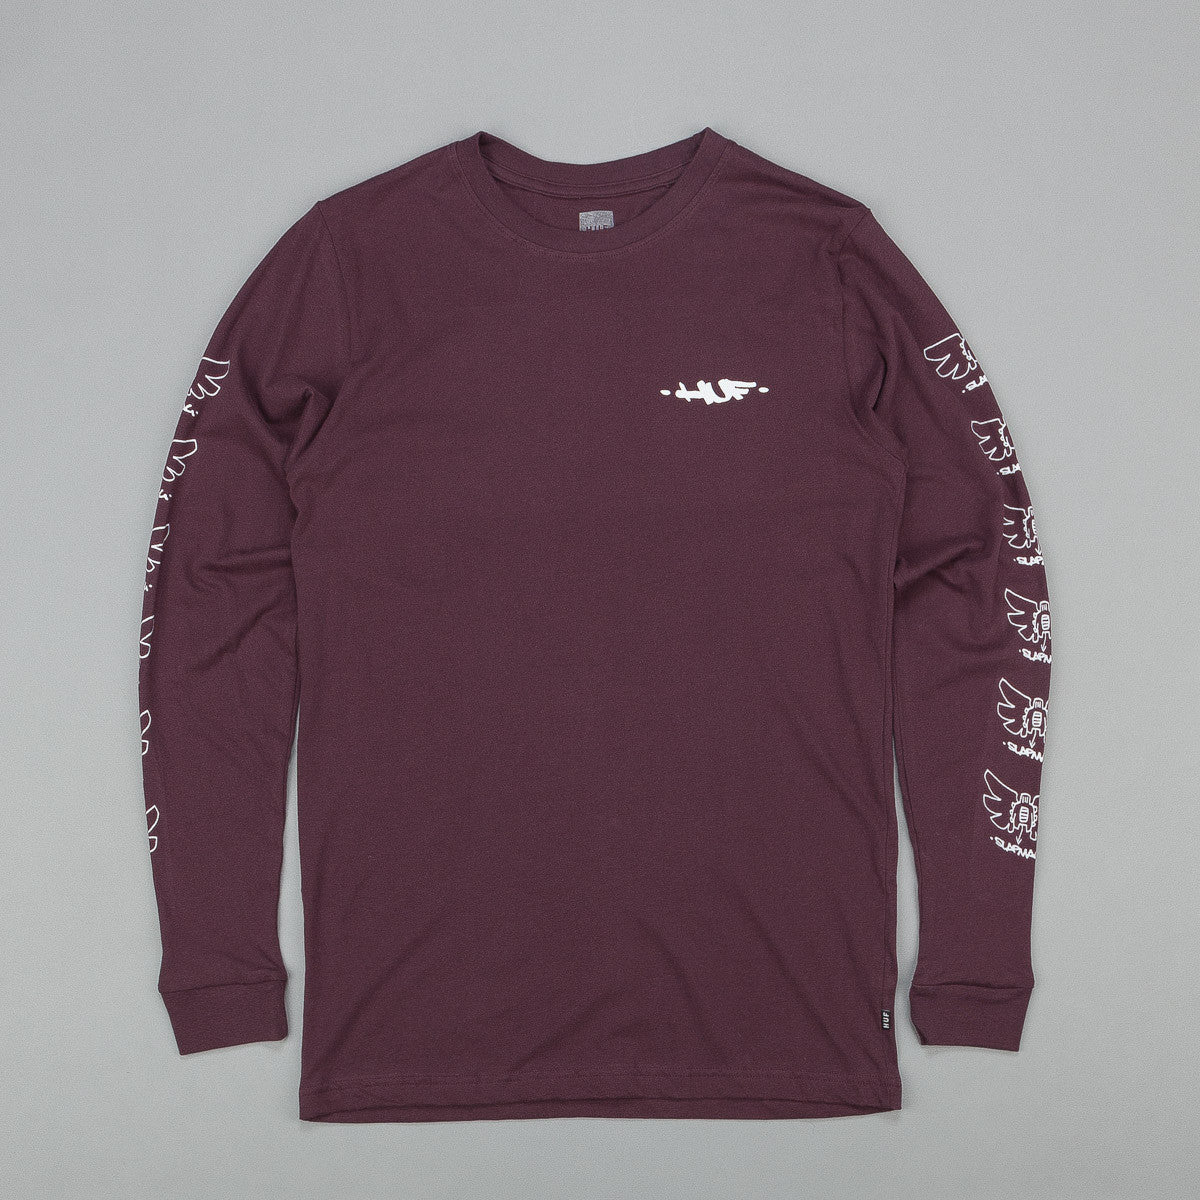 Huf X Slap Butterfly Long Sleeve T-Shirt